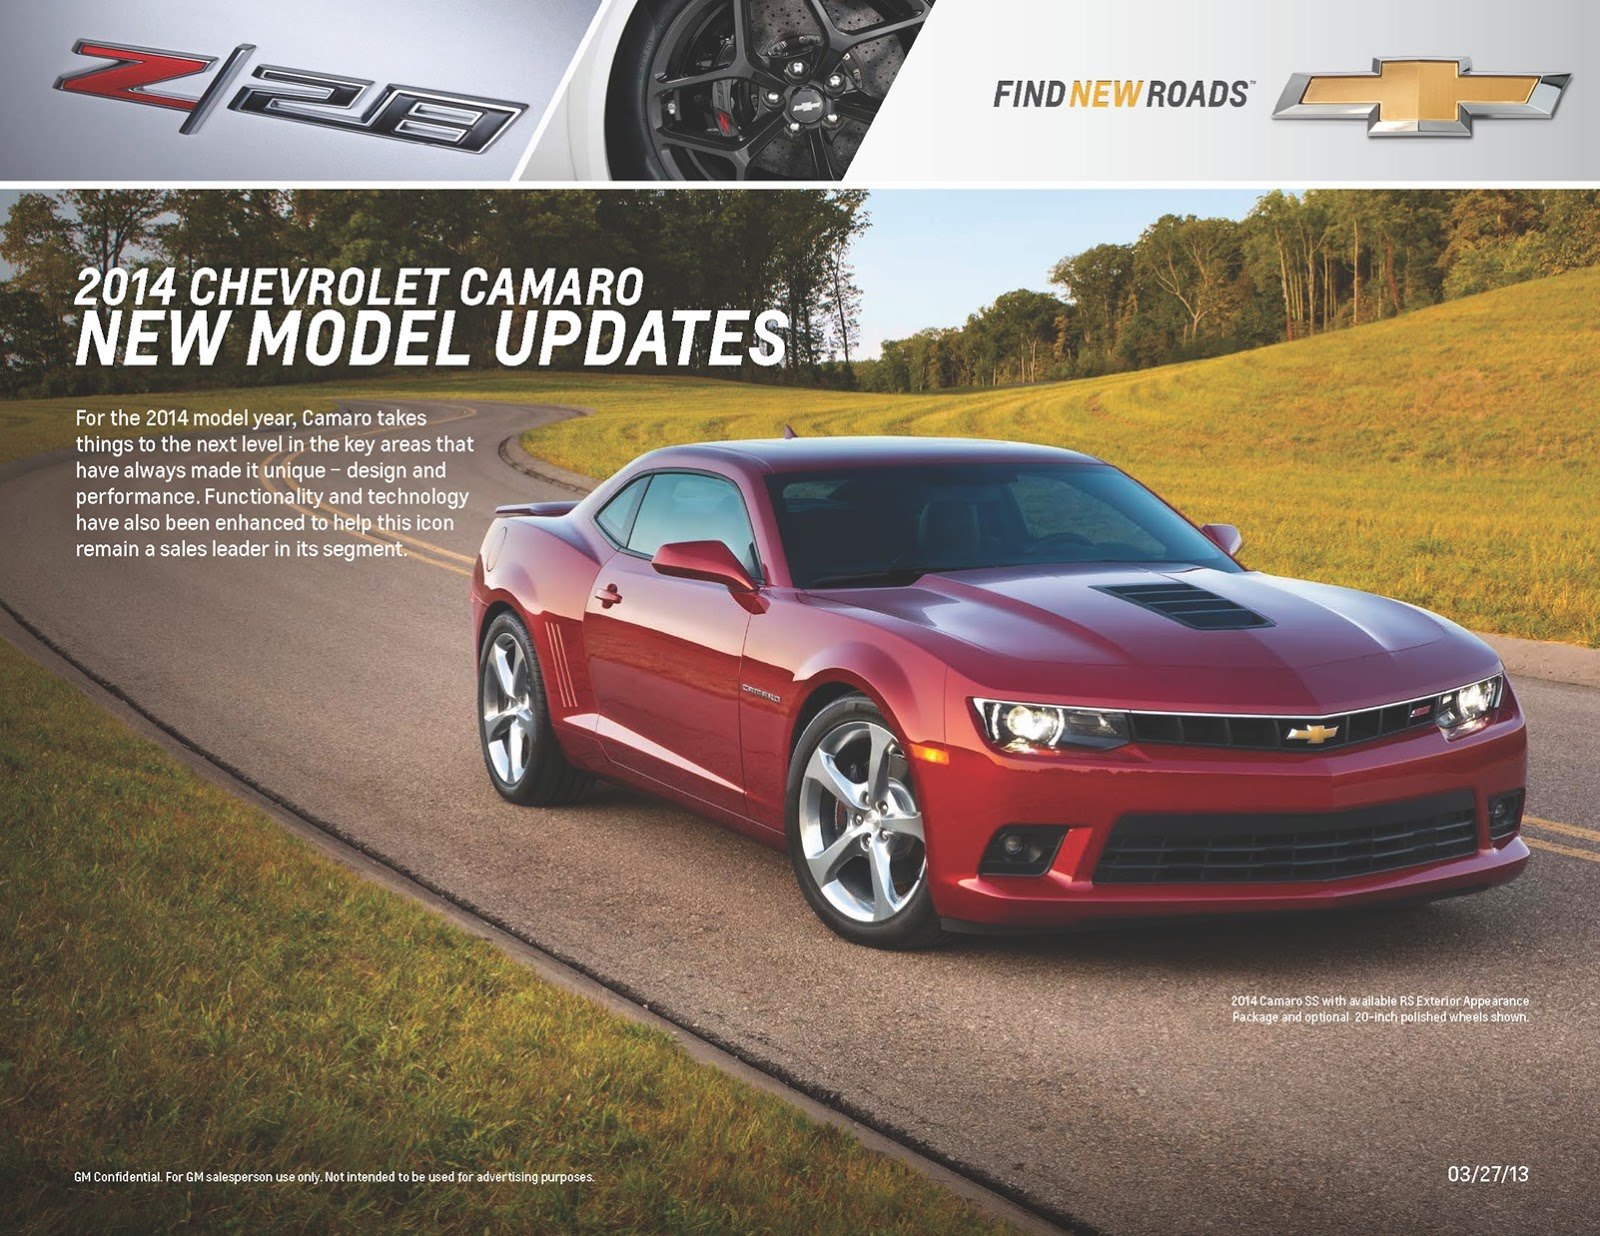 2014 Chevrolet Camaro Details Revealed By Dealer Brochure